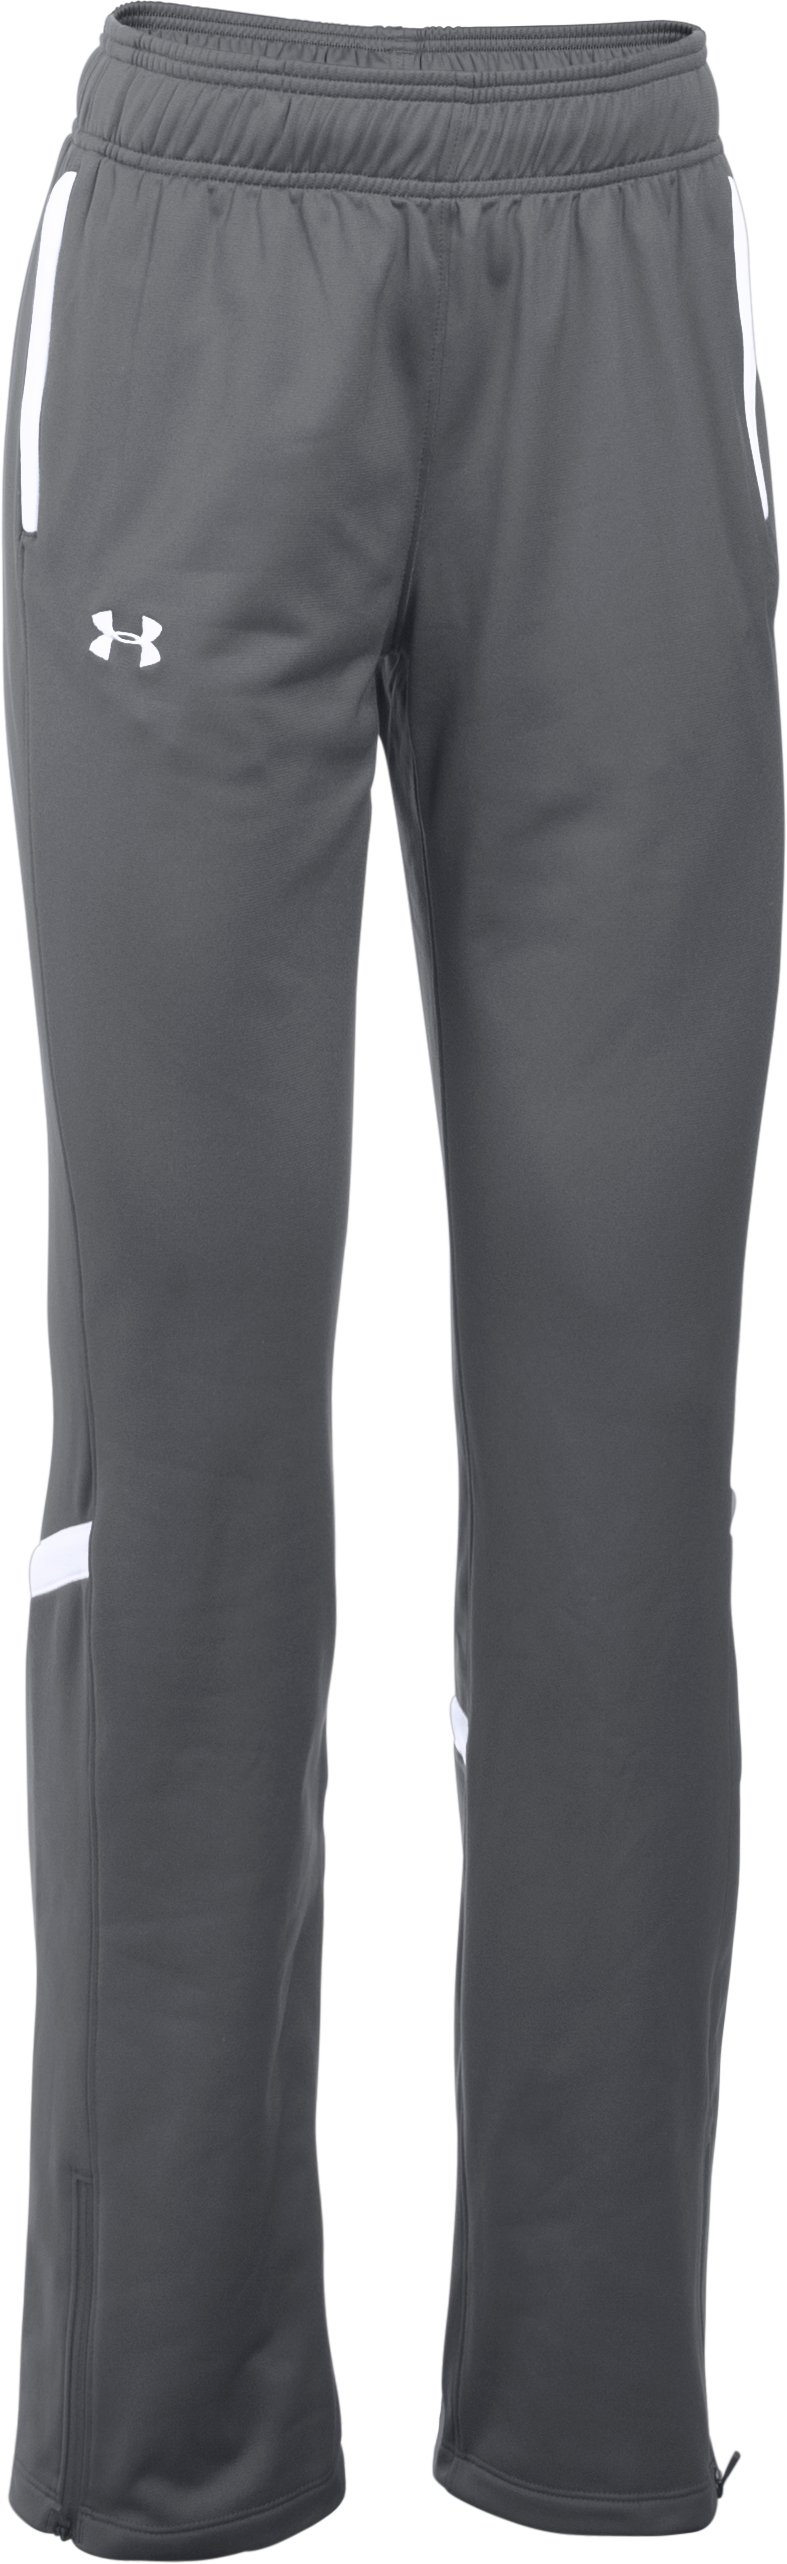 Women's UA Qualifier Knit Warm-Up Pants, Graphite, undefined